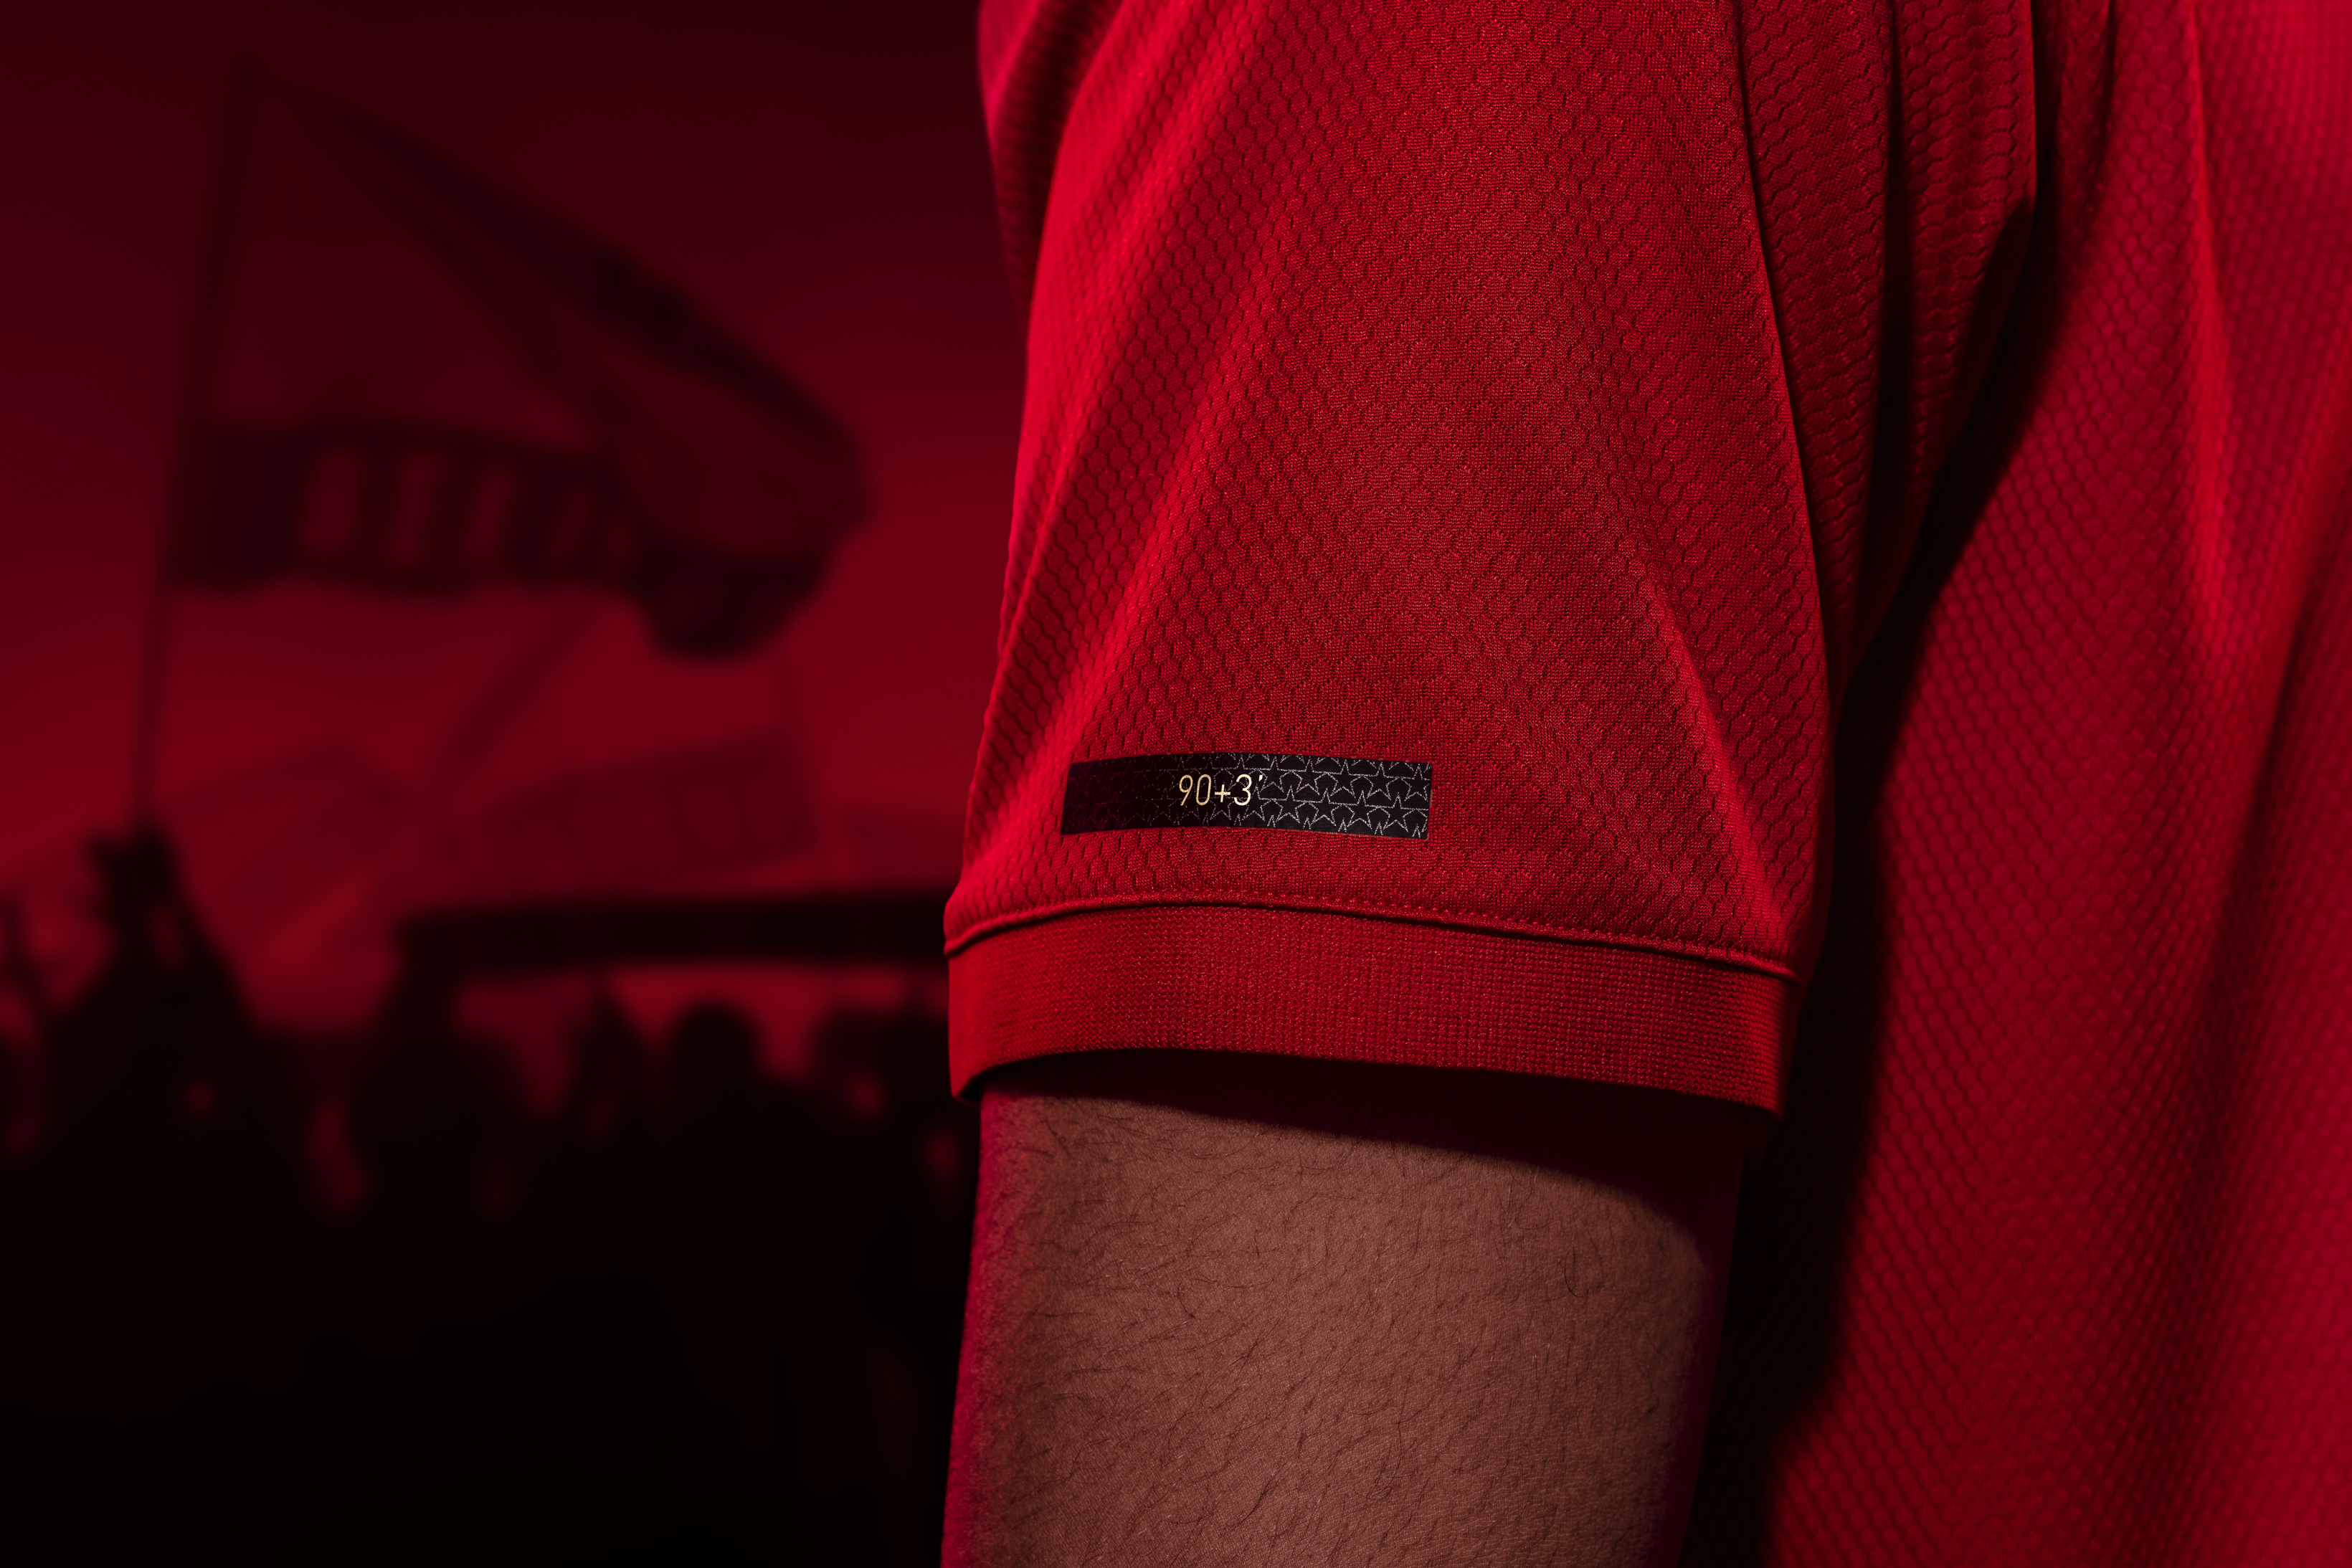 The strip also commemorates the minutes of the goals scored by Sheringham and Solskjaer (Man Utd/Adidas/PA)